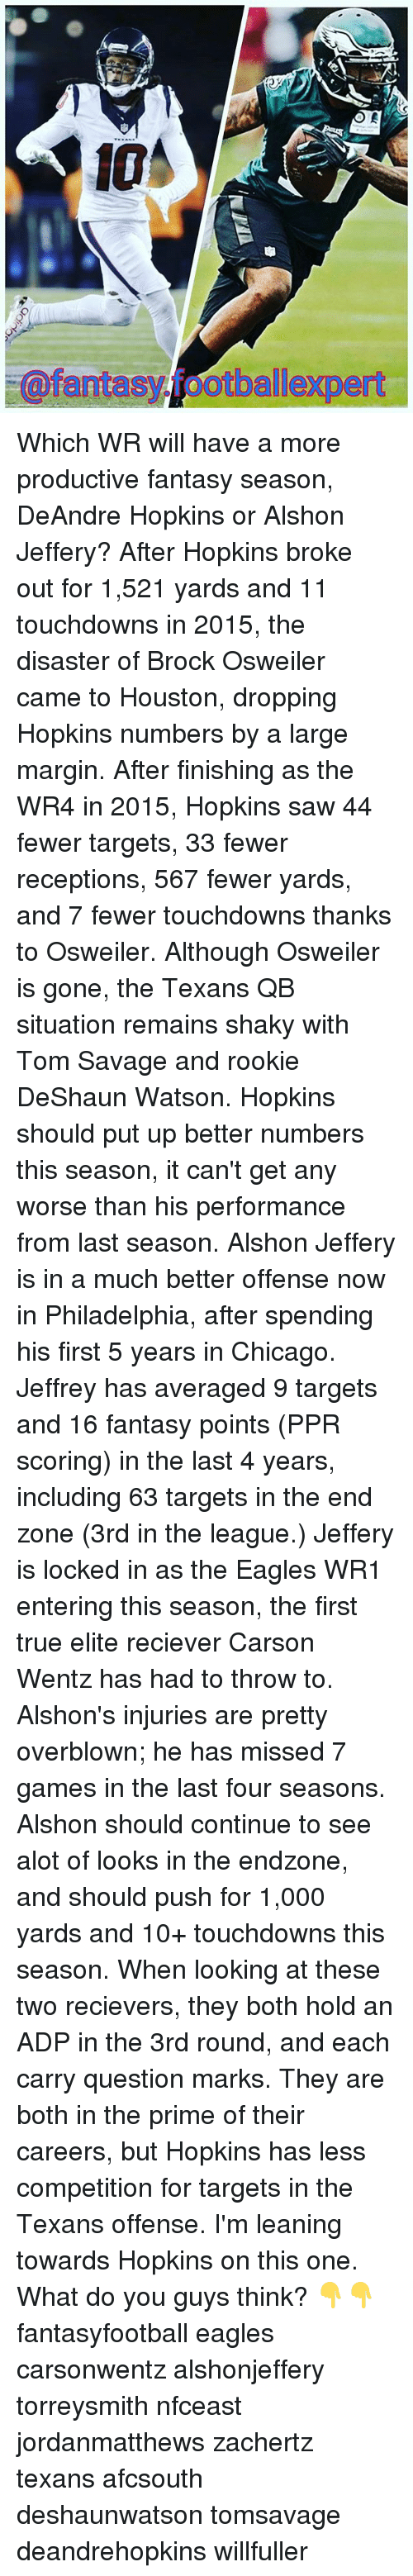 Chicago, Philadelphia Eagles, and Memes: fantasy otballexpert Which WR will have a more productive fantasy season, DeAndre Hopkins or Alshon Jeffery? After Hopkins broke out for 1,521 yards and 11 touchdowns in 2015, the disaster of Brock Osweiler came to Houston, dropping Hopkins numbers by a large margin. After finishing as the WR4 in 2015, Hopkins saw 44 fewer targets, 33 fewer receptions, 567 fewer yards, and 7 fewer touchdowns thanks to Osweiler. Although Osweiler is gone, the Texans QB situation remains shaky with Tom Savage and rookie DeShaun Watson. Hopkins should put up better numbers this season, it can't get any worse than his performance from last season. Alshon Jeffery is in a much better offense now in Philadelphia, after spending his first 5 years in Chicago. Jeffrey has averaged 9 targets and 16 fantasy points (PPR scoring) in the last 4 years, including 63 targets in the end zone (3rd in the league.) Jeffery is locked in as the Eagles WR1 entering this season, the first true elite reciever Carson Wentz has had to throw to. Alshon's injuries are pretty overblown; he has missed 7 games in the last four seasons. Alshon should continue to see alot of looks in the endzone, and should push for 1,000 yards and 10+ touchdowns this season. When looking at these two recievers, they both hold an ADP in the 3rd round, and each carry question marks. They are both in the prime of their careers, but Hopkins has less competition for targets in the Texans offense. I'm leaning towards Hopkins on this one. What do you guys think? 👇👇 fantasyfootball eagles carsonwentz alshonjeffery torreysmith nfceast jordanmatthews zachertz texans afcsouth deshaunwatson tomsavage deandrehopkins willfuller